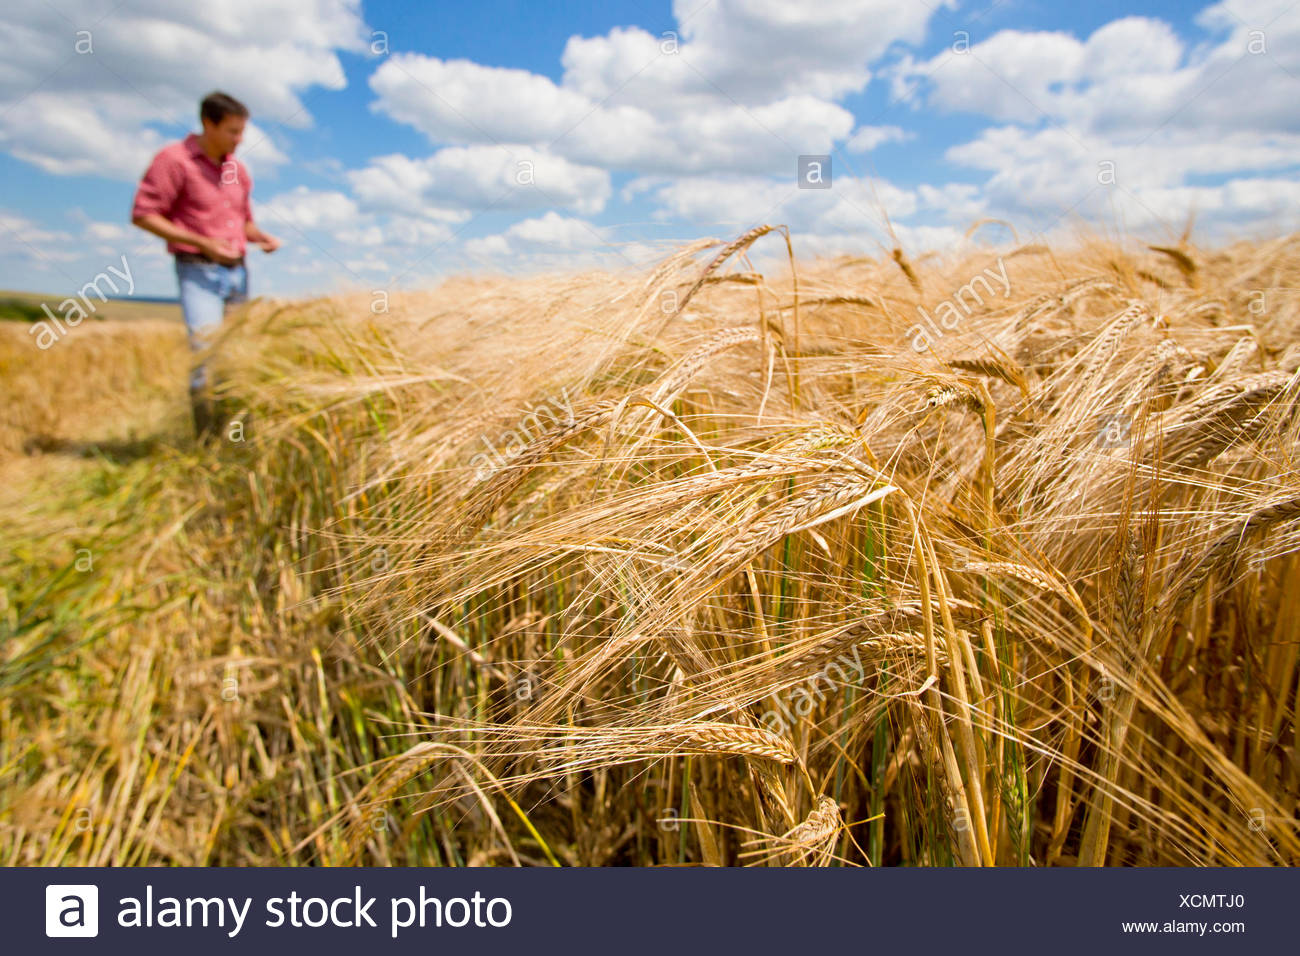 Sunny rural barley crop field in summer with farmer in background - Stock Image